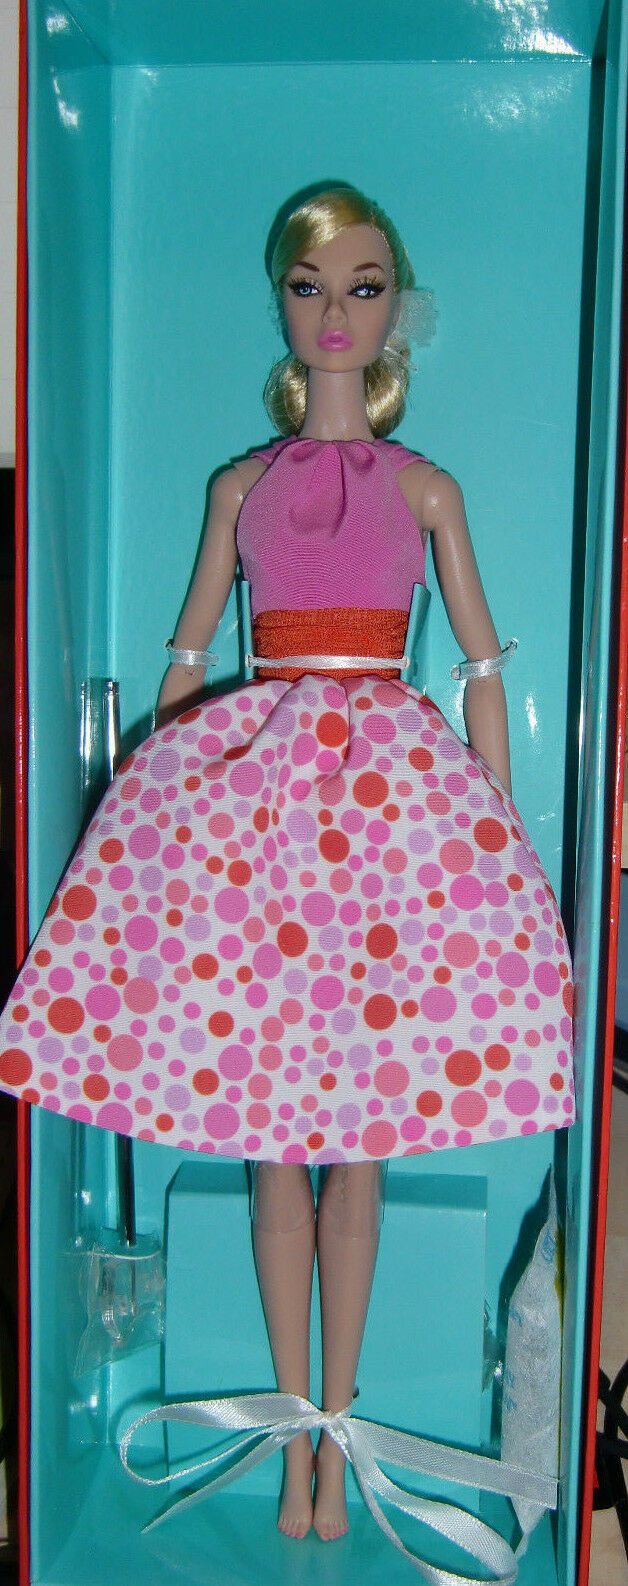 2018 Fashion royalty royalty royalty Soda Pop Saterday Poppy Parker W-Club doll NRFB dc3598